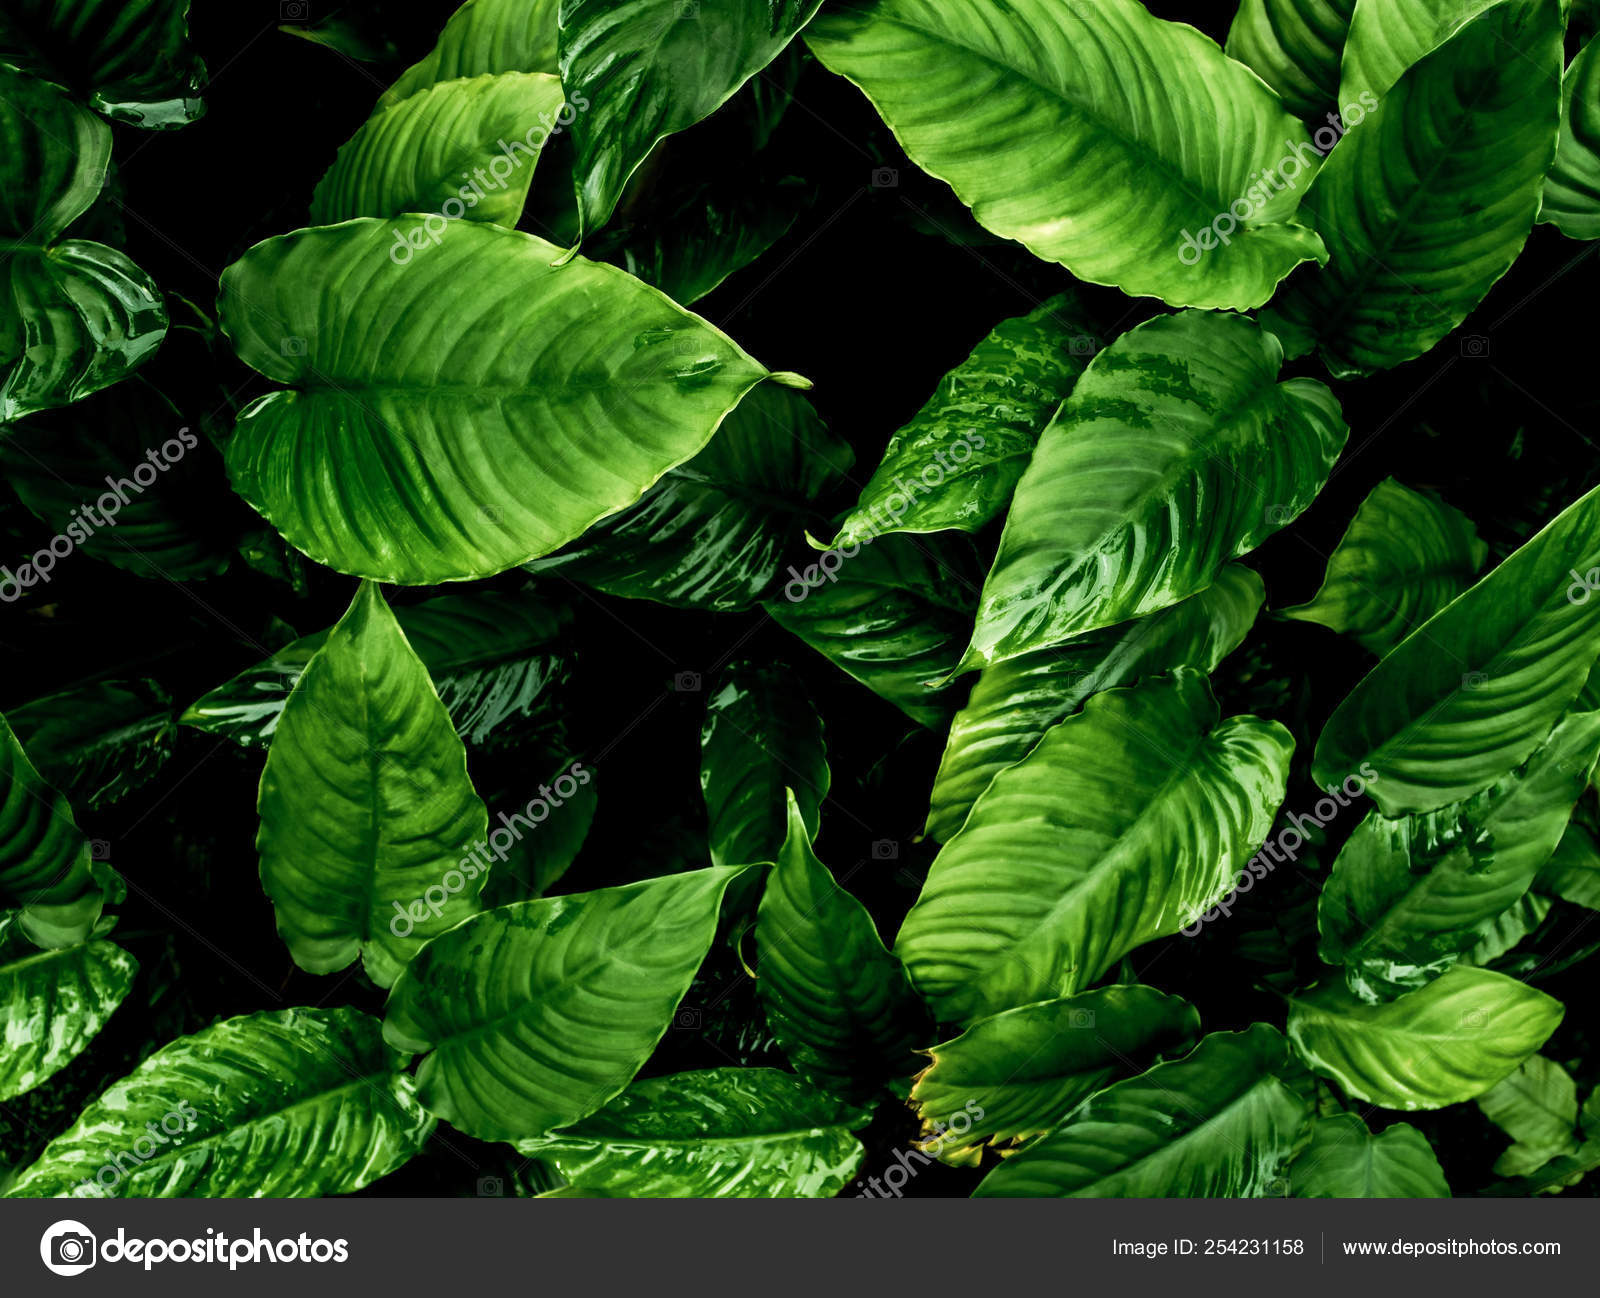 Freshness Tropical Leaves Surface In Dark Tone As Rife Forest Ba Stock Photo C Satakorn S 254231158 Land areas approximately bounded by the tropic of cancer and capricorn, but possibly affected by other factors such as prevailing winds. https depositphotos com 254231158 stock photo freshness tropical leaves surface in html